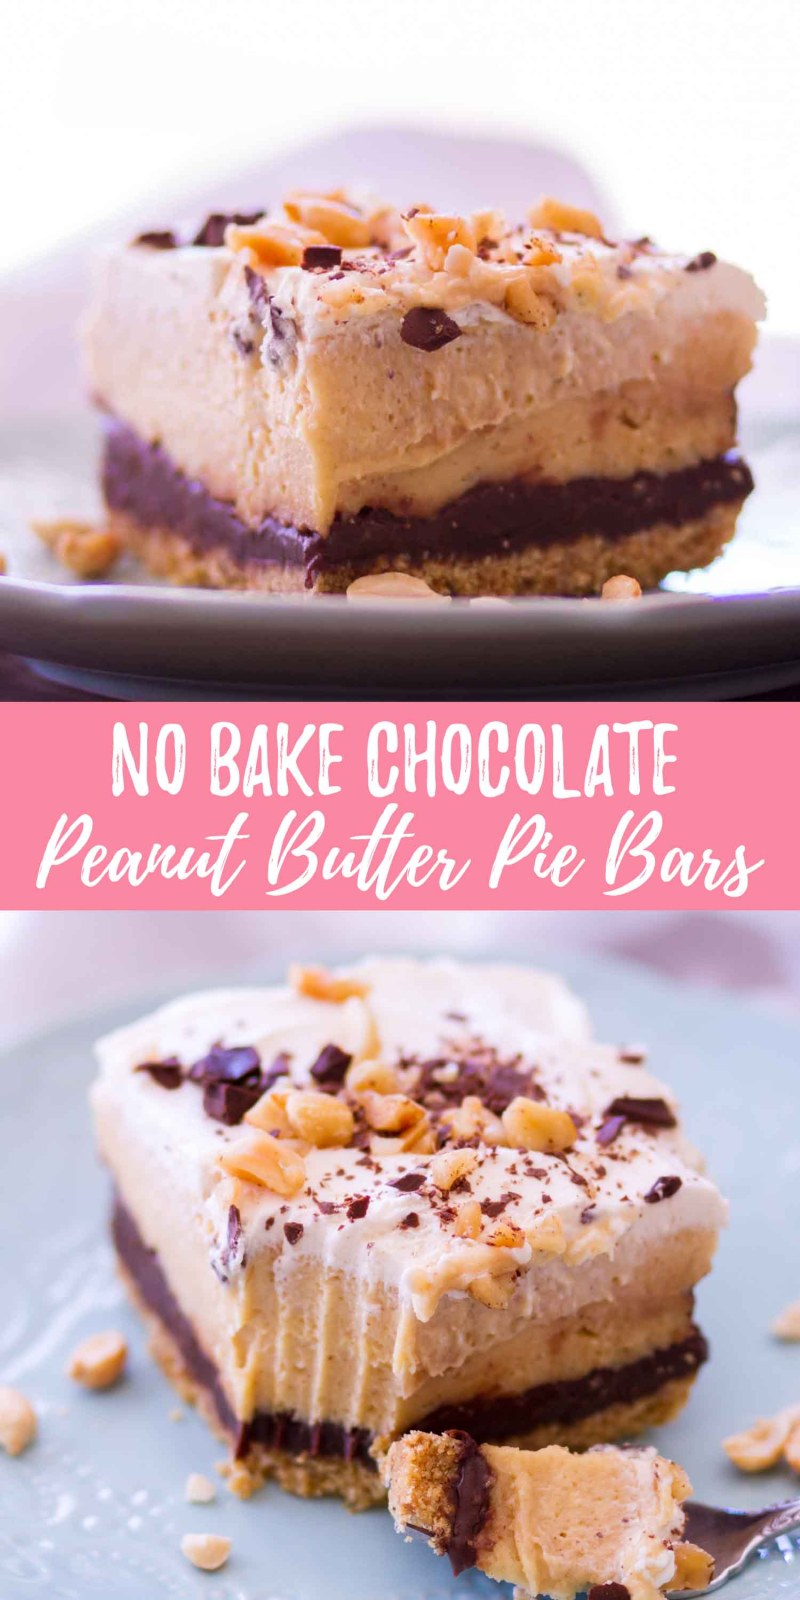 no bake chocolate peanut butter pie bars collage with text